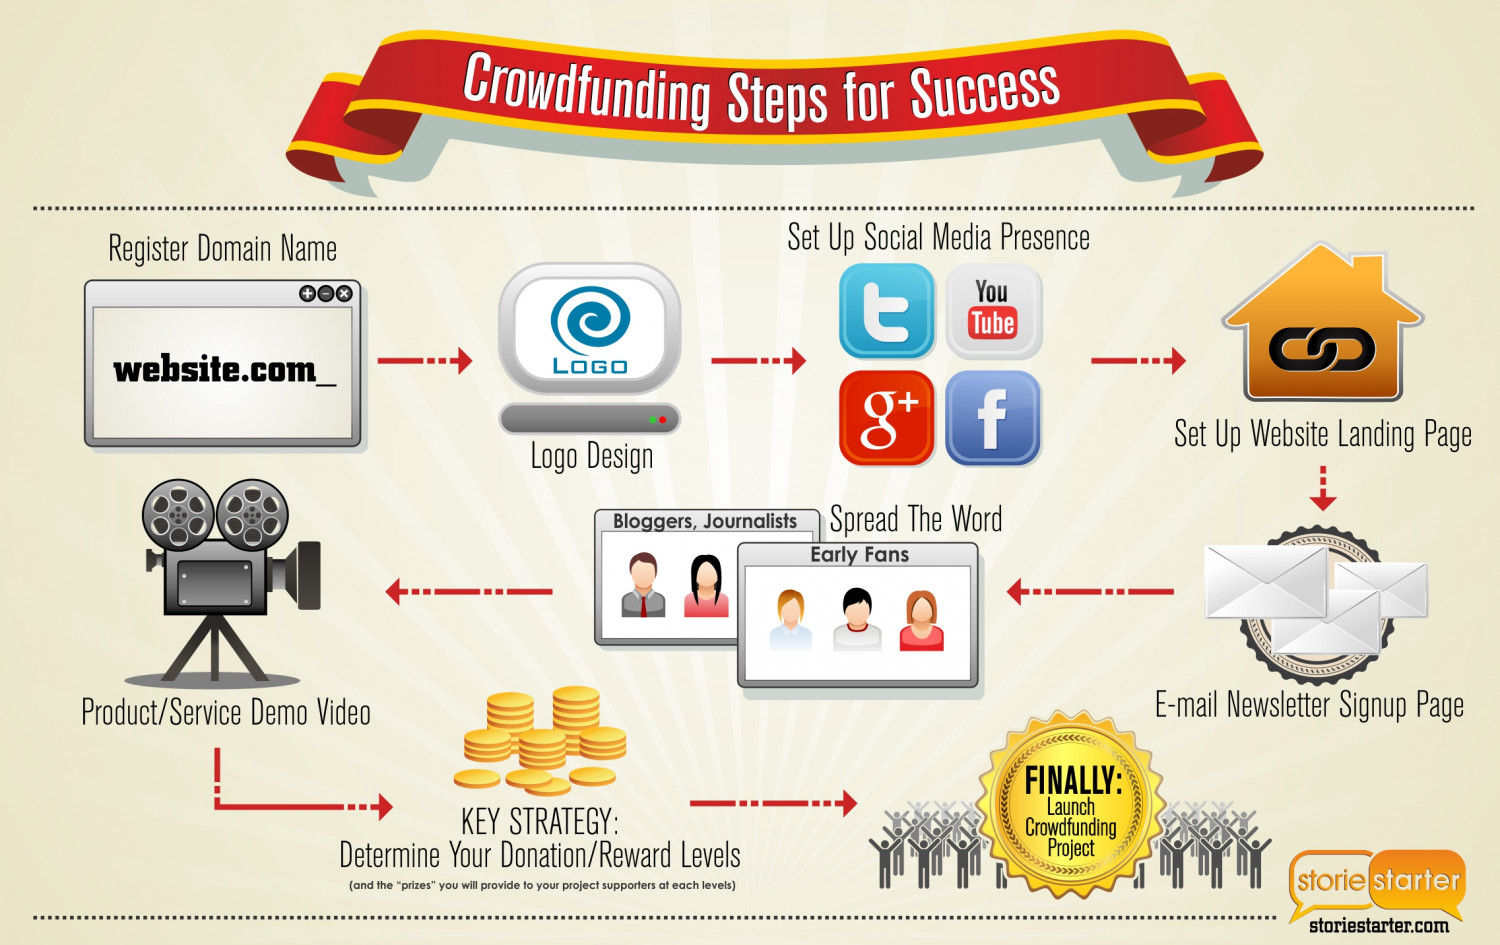 Crowdfunding: Steps for Success Infographic